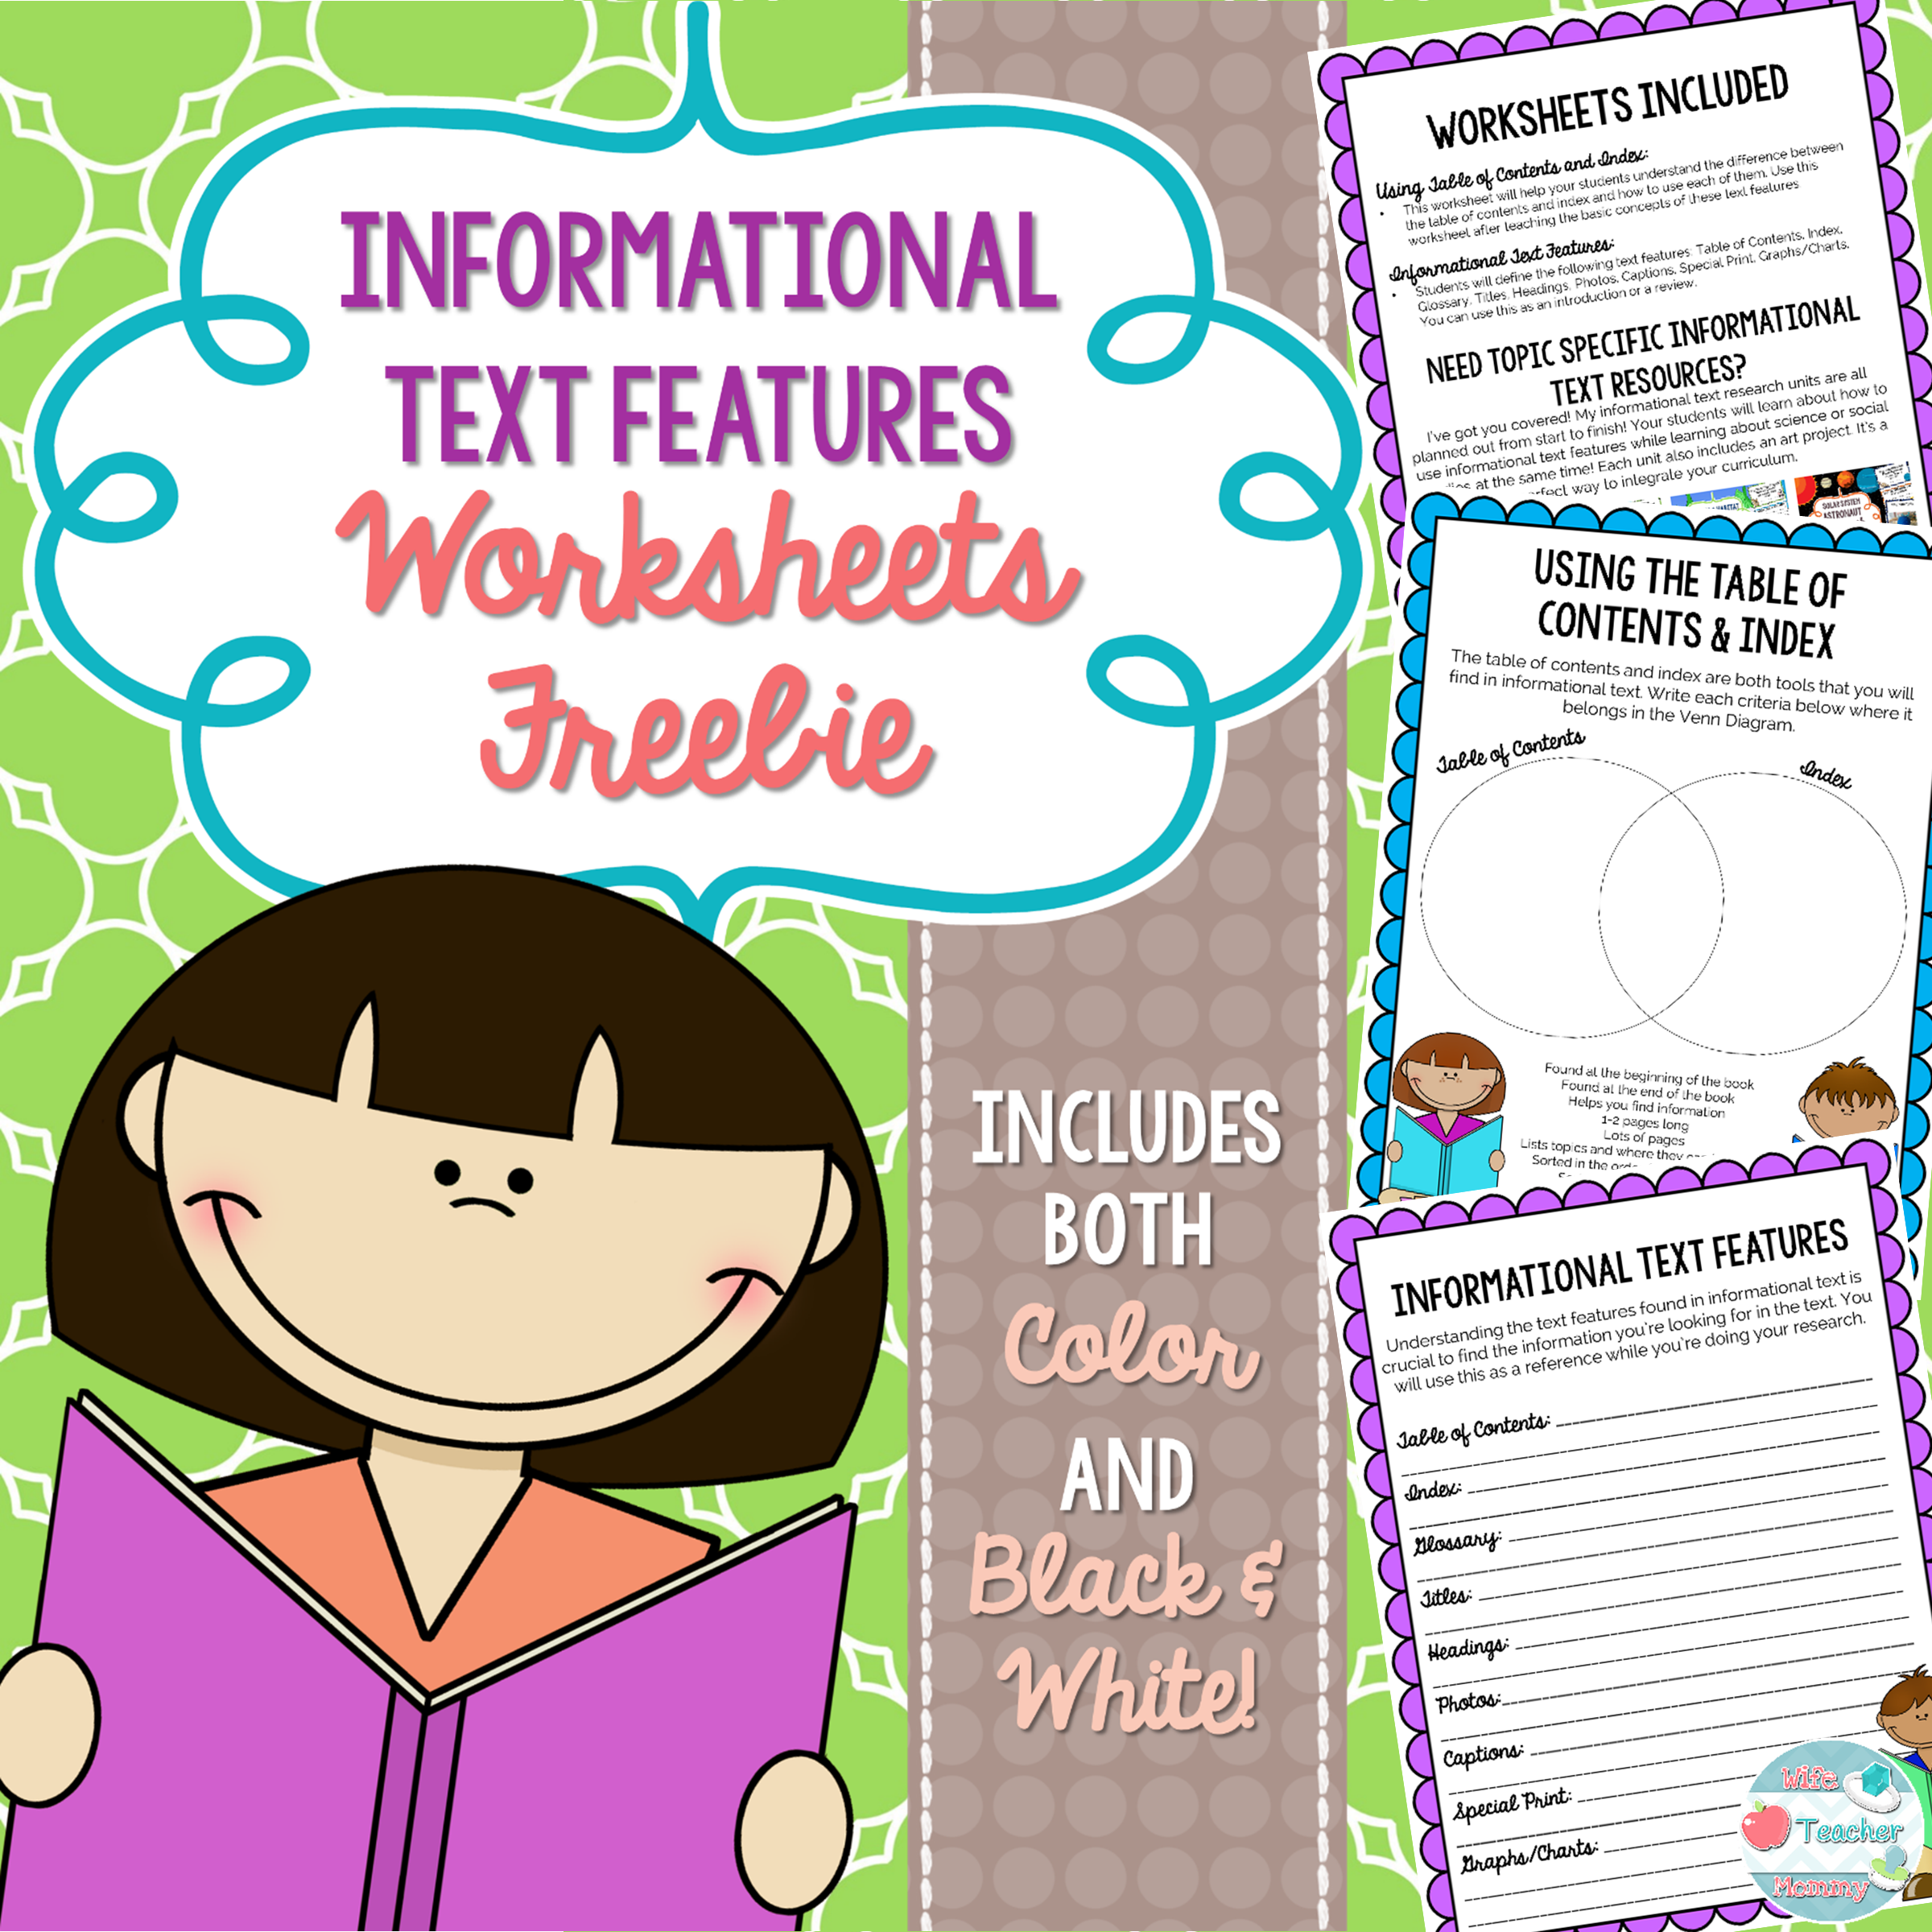 Worksheets Expository Text Features teaching informational text features this expository